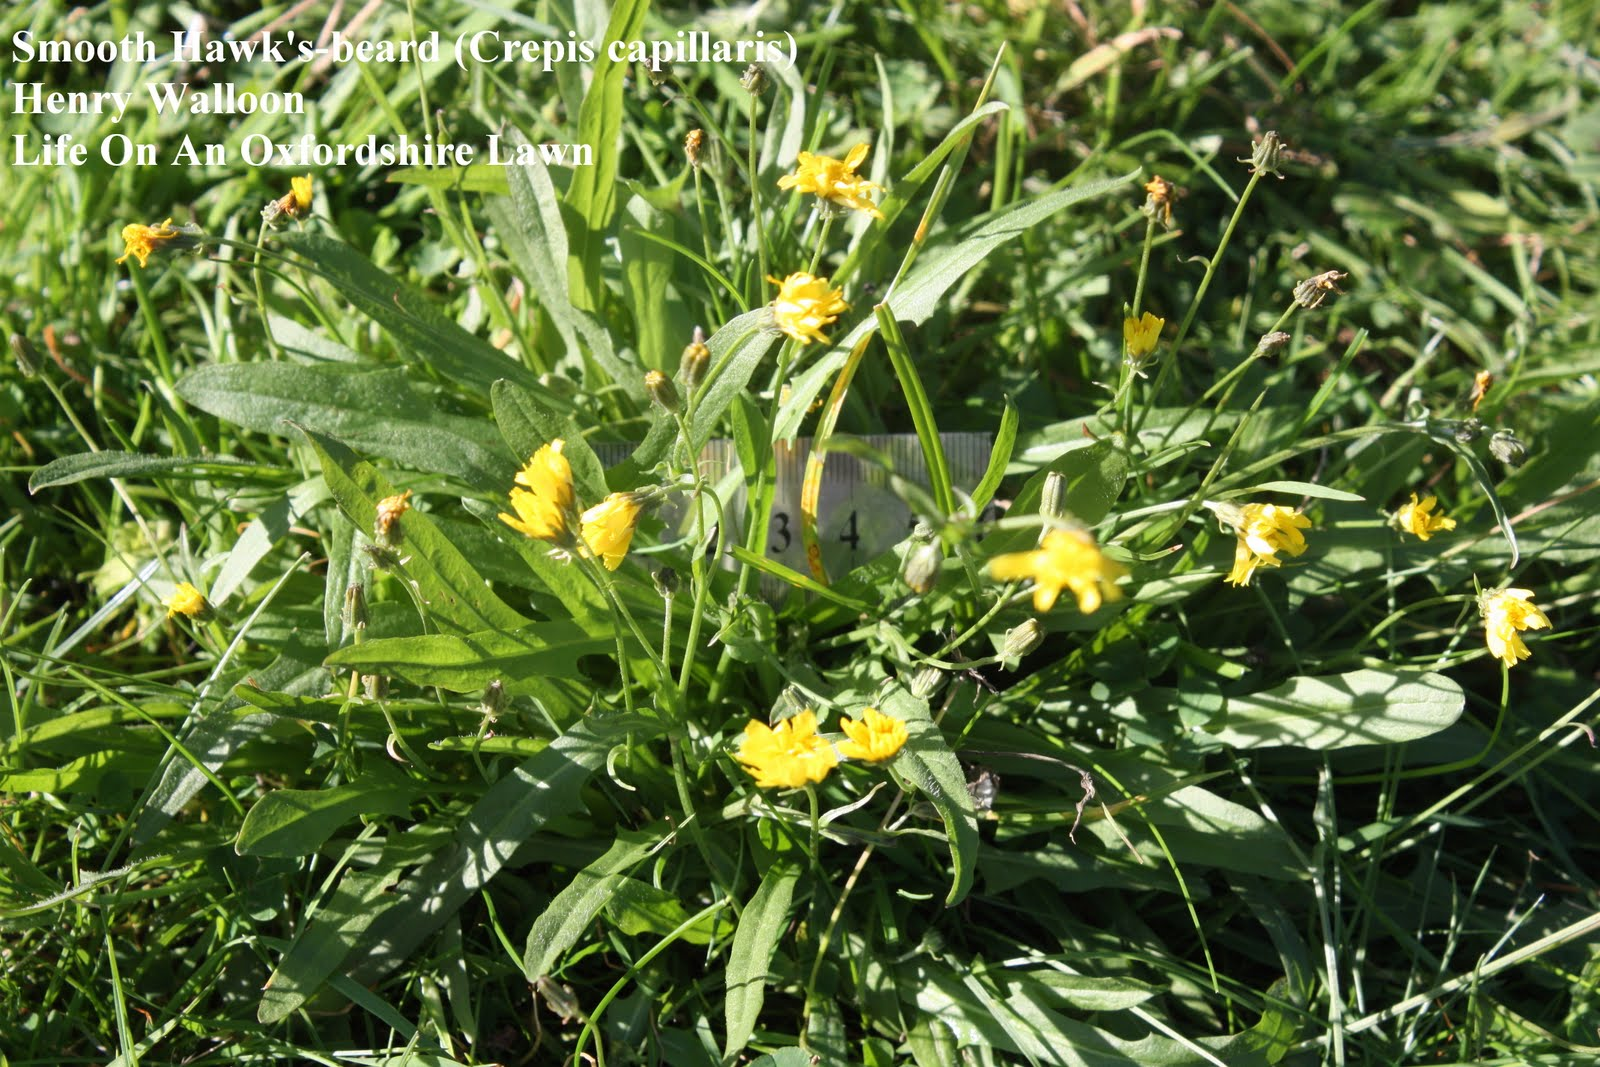 Life On An Oxfordshire Lawn: Smooth Hawks-beard Crepis ... - Crepis